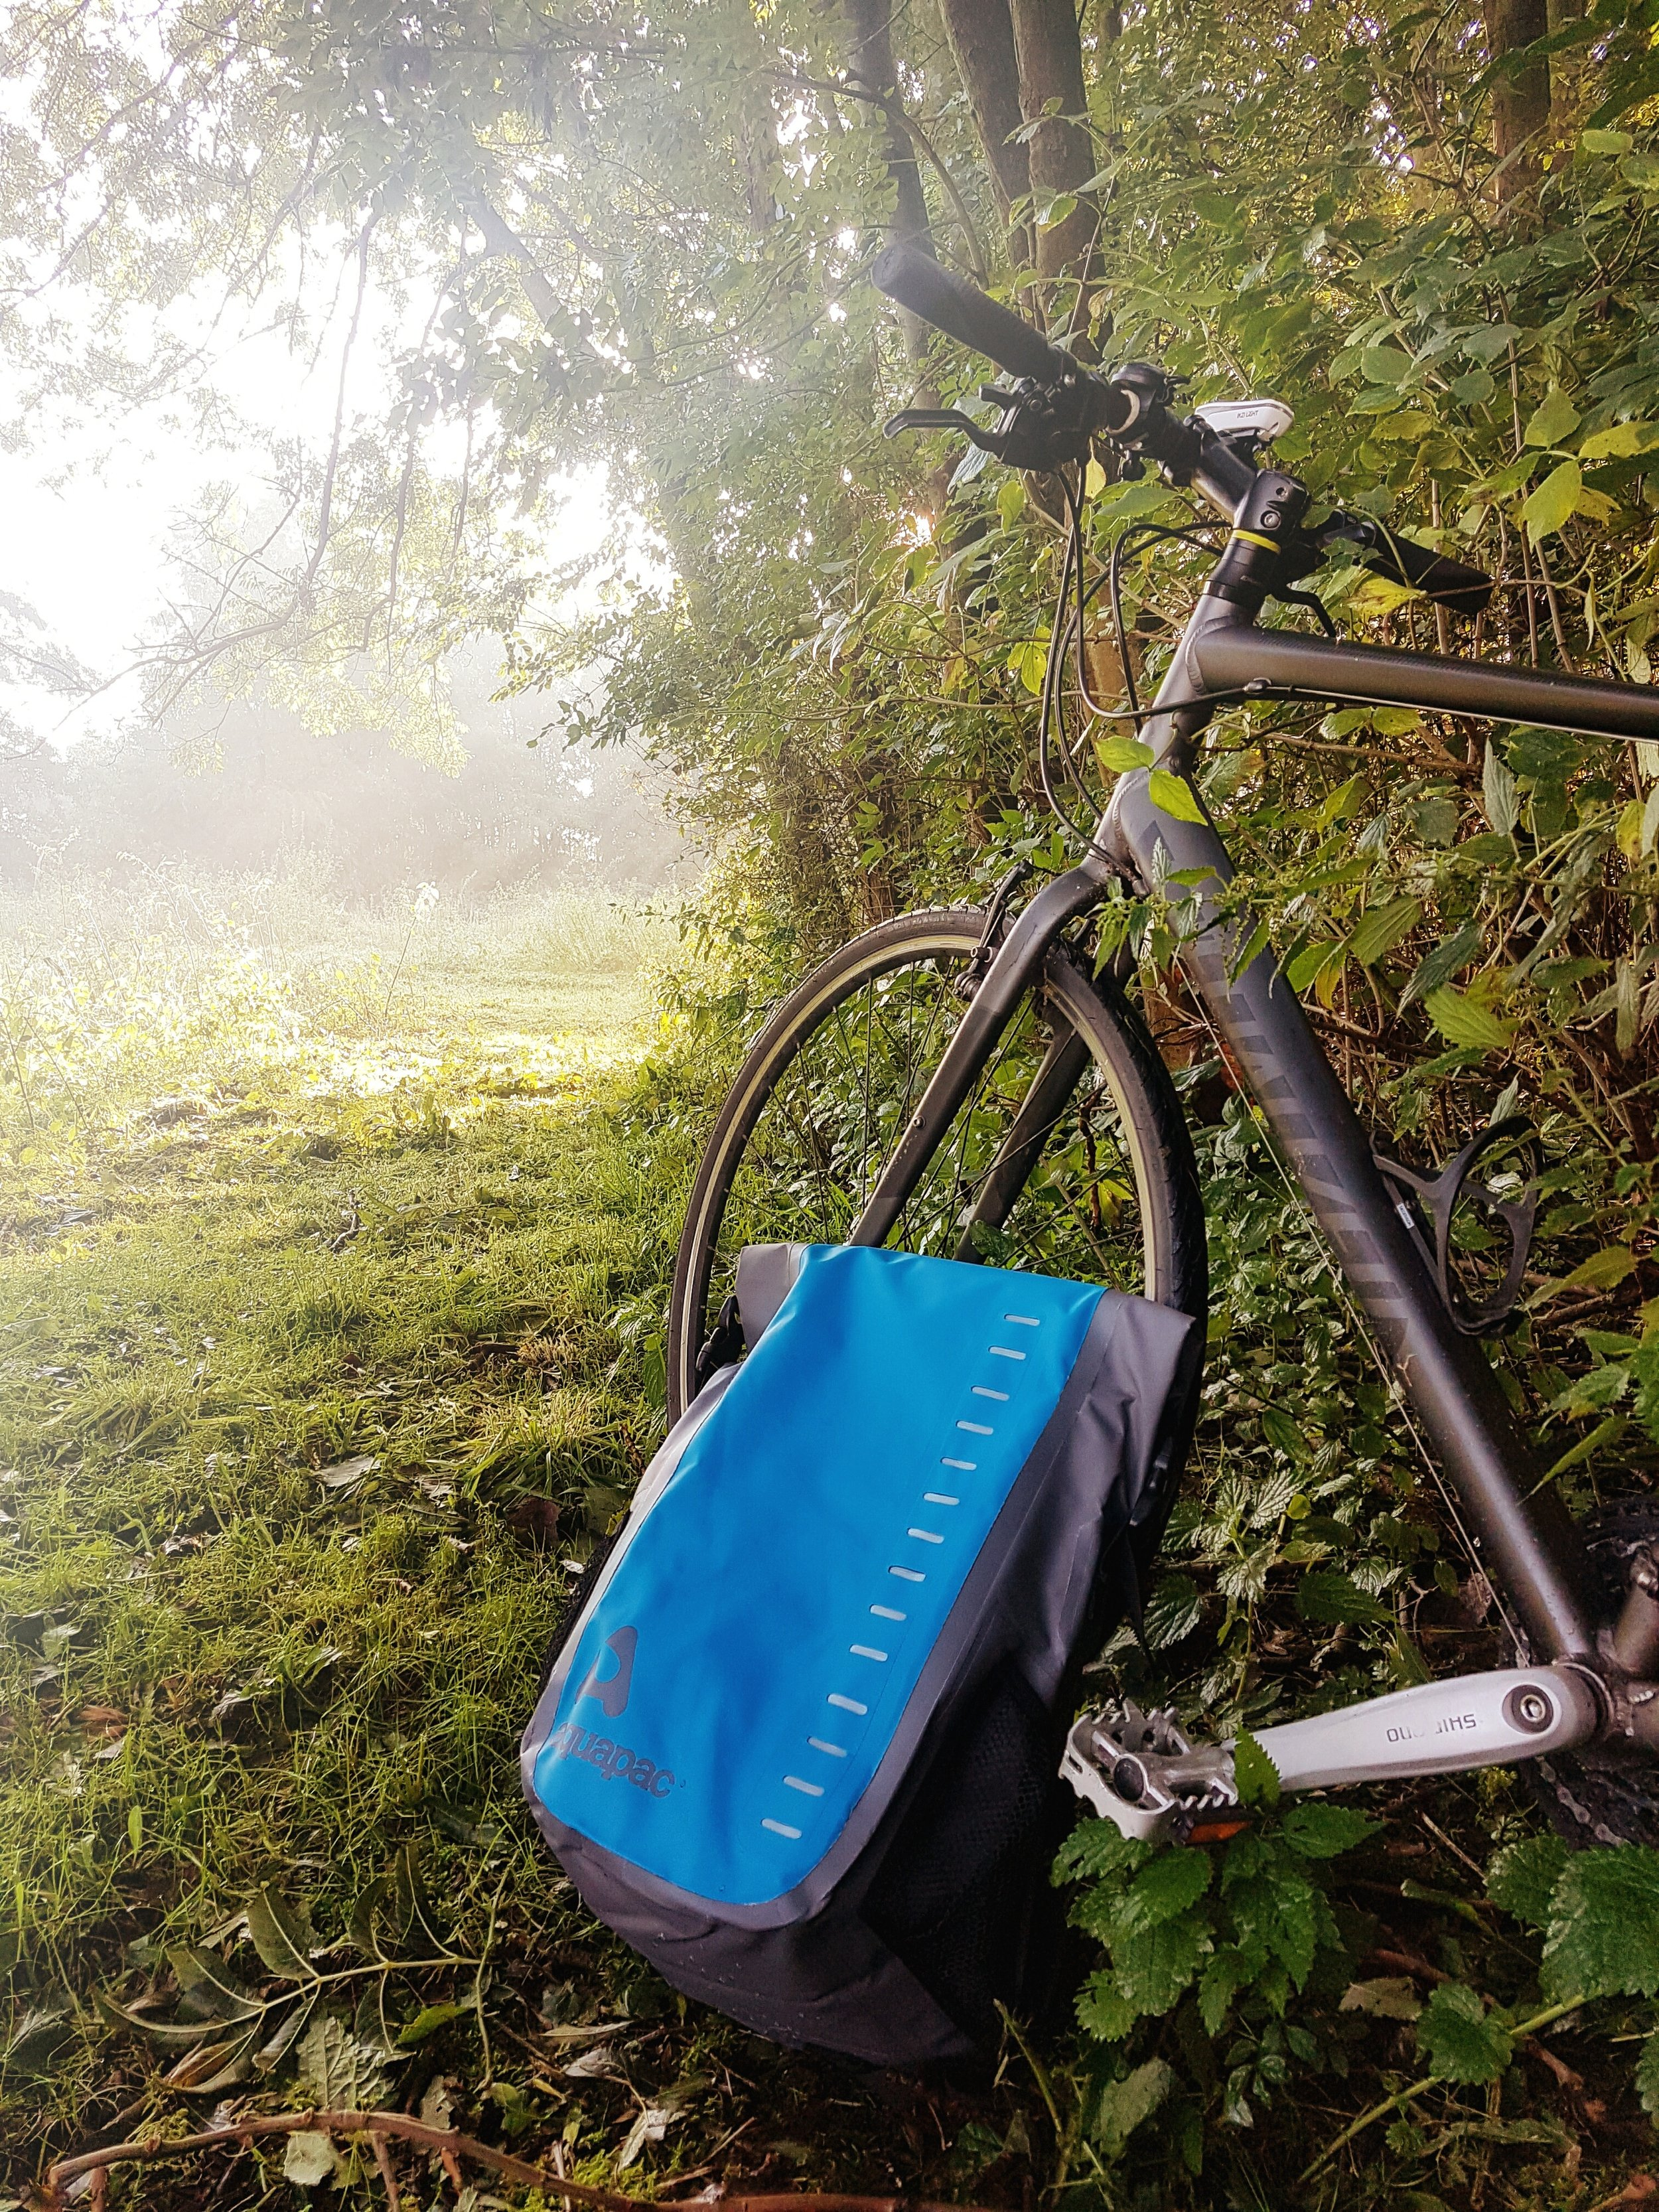 The  pack  is perfect for any  commuter cyclist . I use mine every day and I cannot begin to stress how comfortable and waterproof this is.  I'm really delighted with the overall size, shape and volume of this pack, as it allows me to carry all that I need on my commute to work.